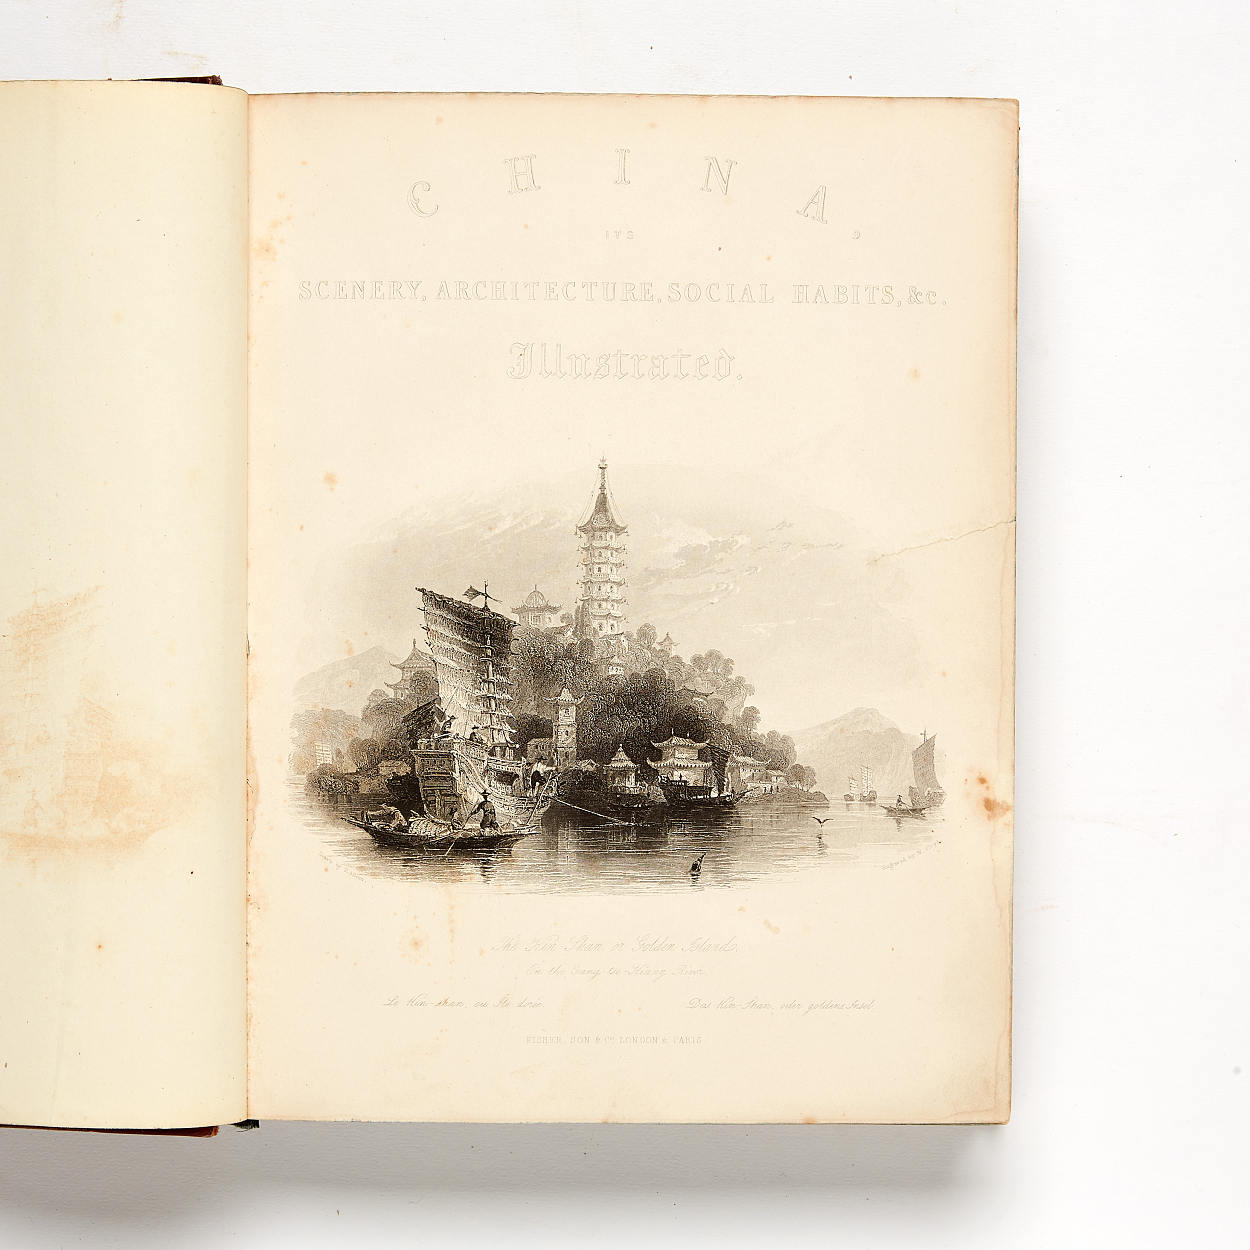 China illustrated in steelengravings by Th. Allom